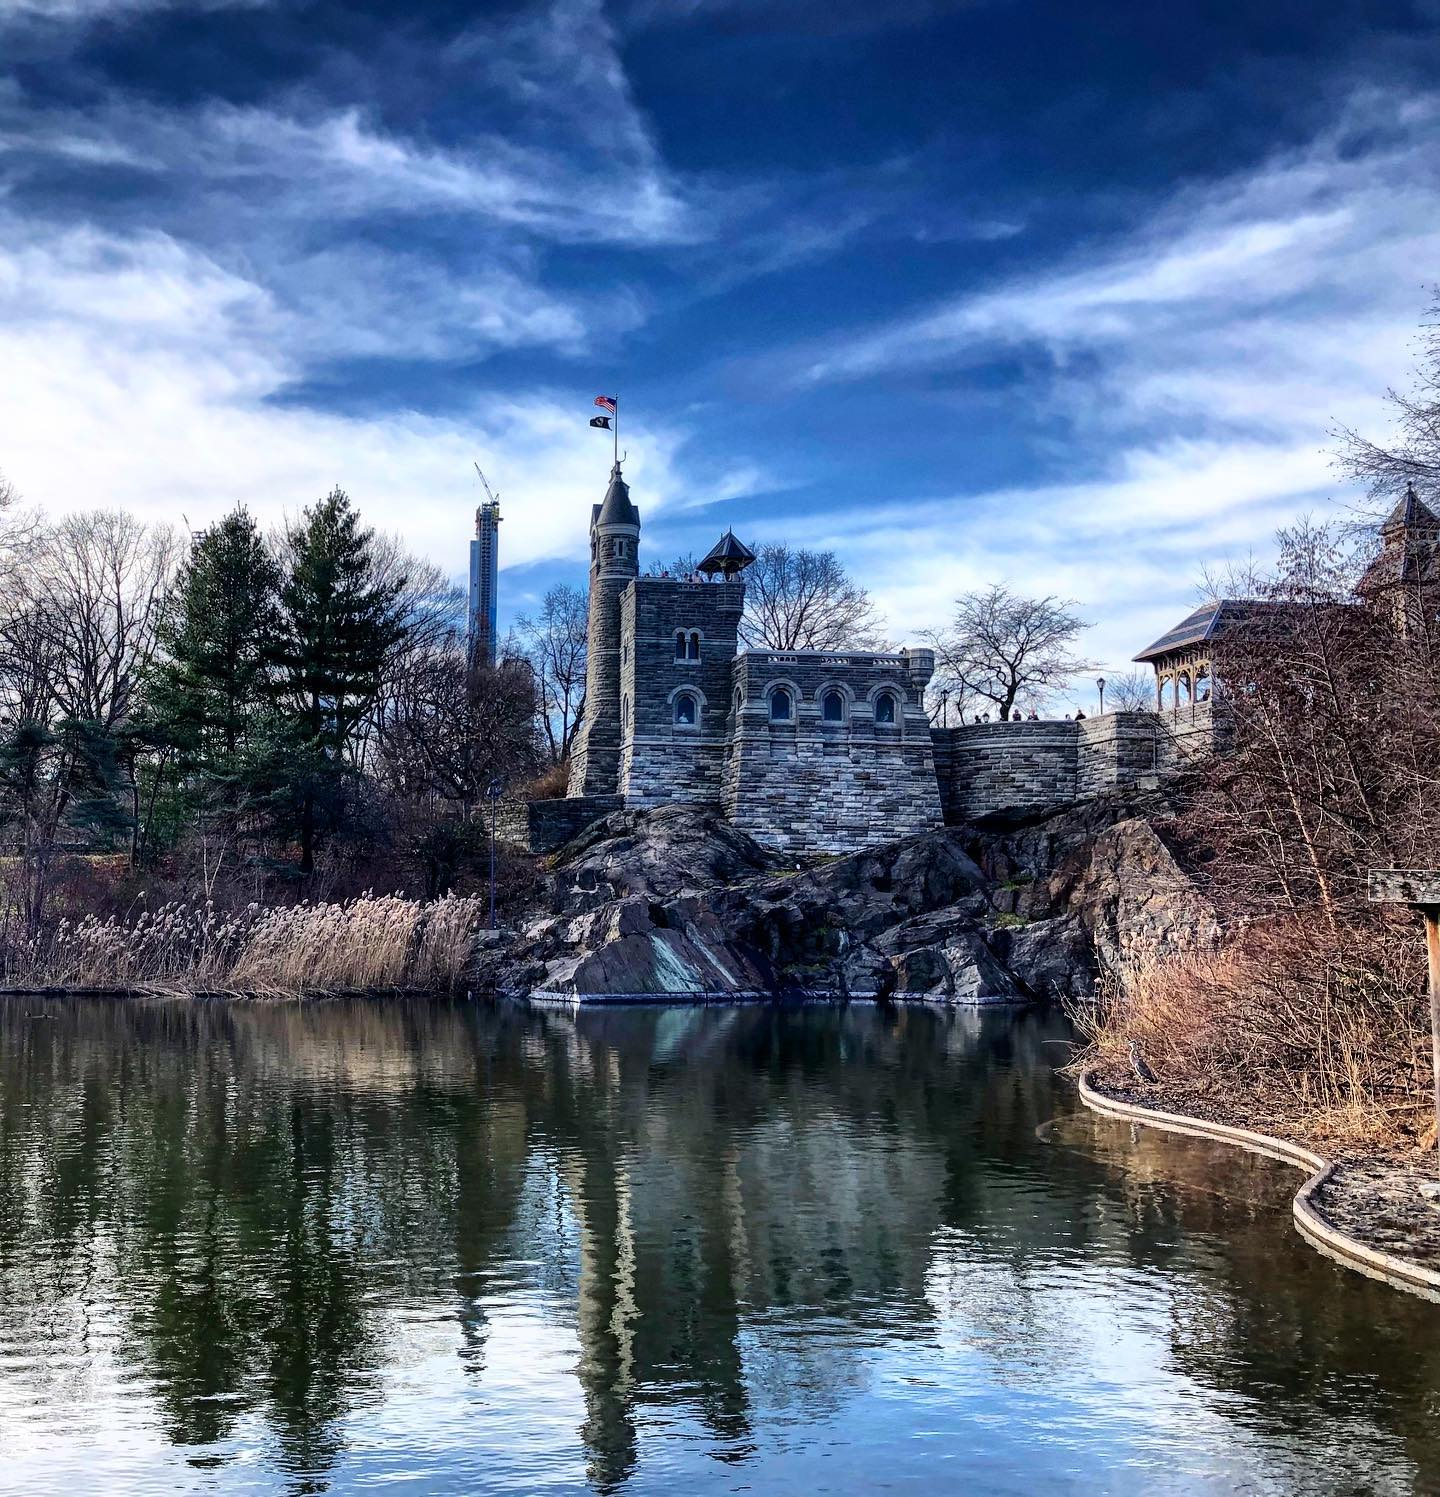 Belvedere Castle, NYC, New York New York City's Central Park is filled with so many treasures. Belvedere Castle is one of them and offers picturesque views of Central Park. #usa #us #usatravel #usatravels #usalove #usaliebe #usaaddicted #newyork #nyc #nycphotographer #nycphotography #citytrip #citytravel #citylove #bigcitylove #centralpark #centralparknyc #belvederecastle #hiddengems #castle #travelphotography #reisefotografie #reiseliebe #travellove #travelbug #reiselust #wanderlust #reisenmachtglücklich #reiseblogger #travelblogger